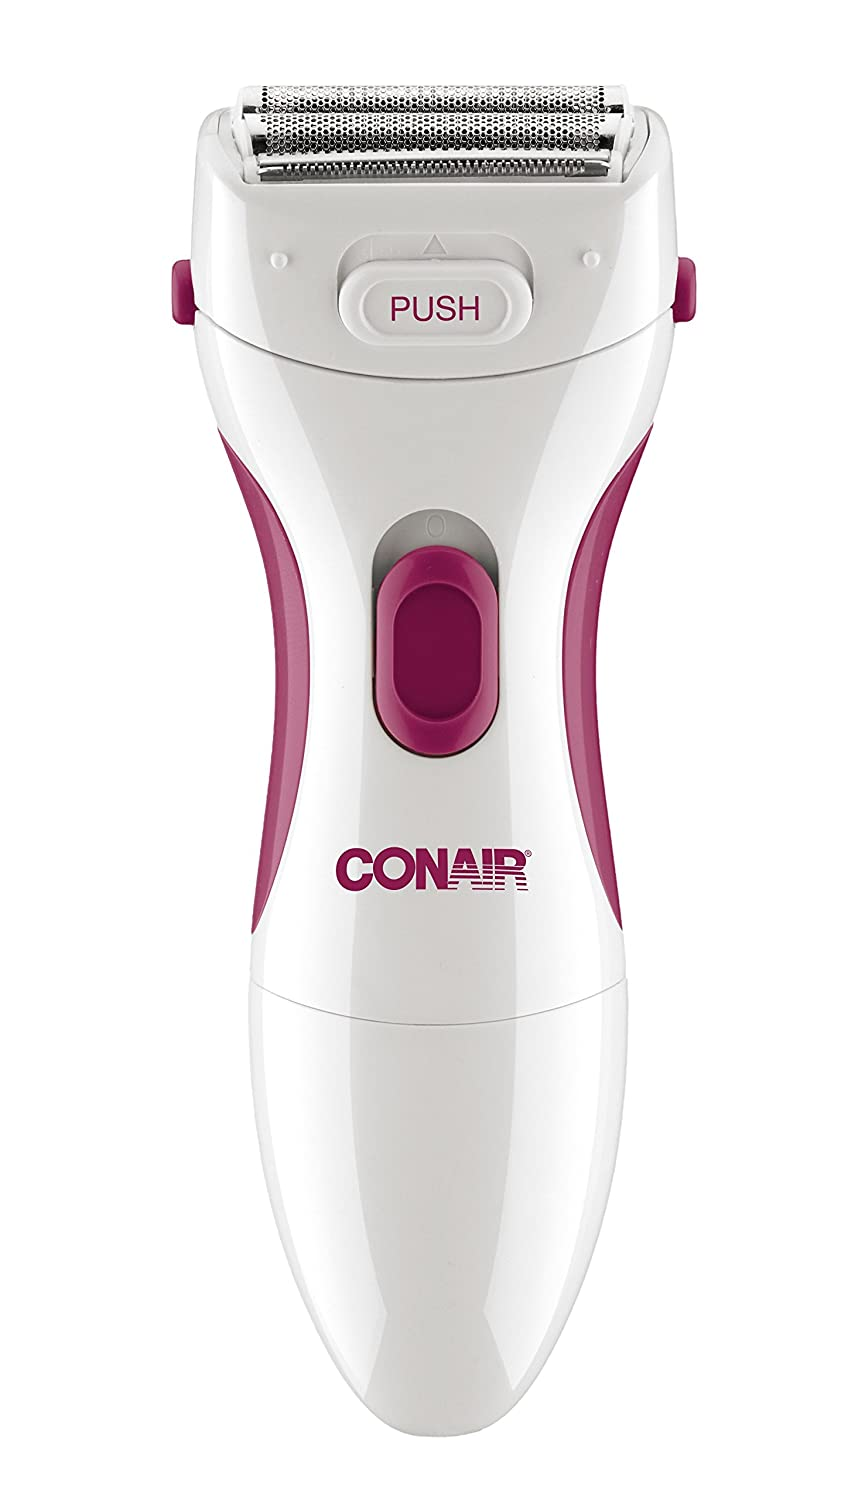 Top 10 Best Ladies Body Shavers For Pubic Hair Removal Of